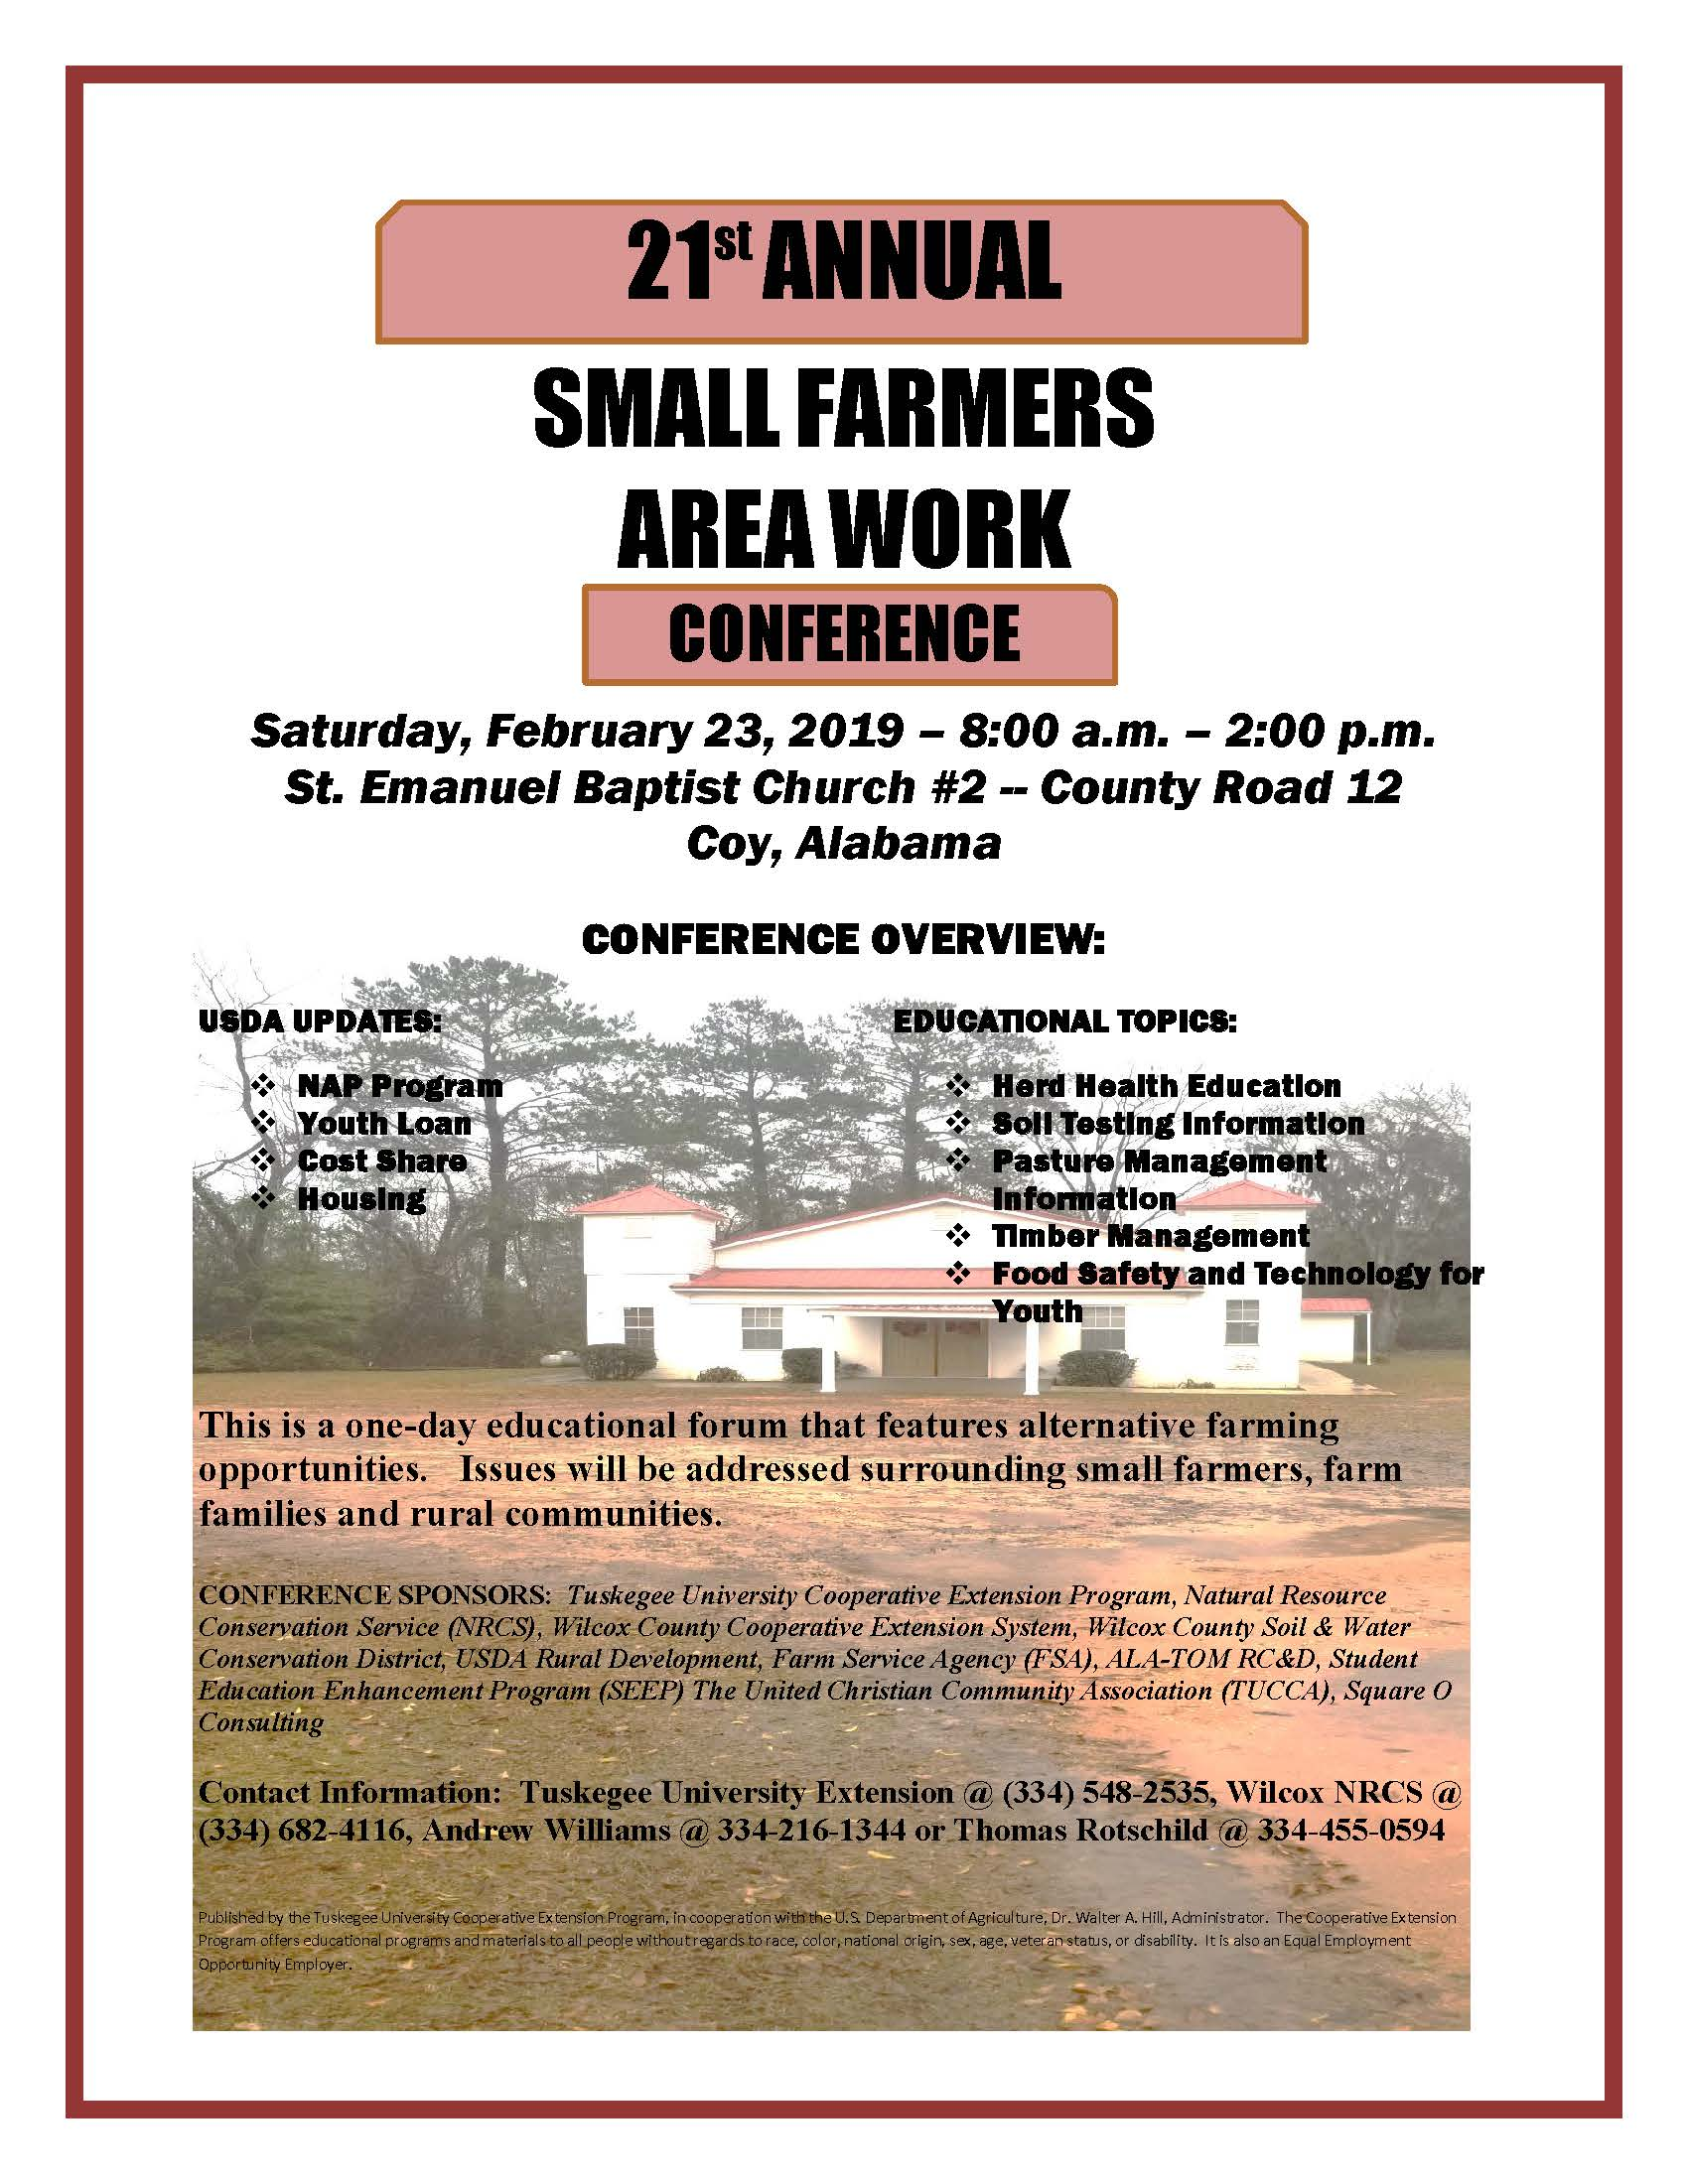 Small Farmers Work Conference 2019 flyer (1).jpg